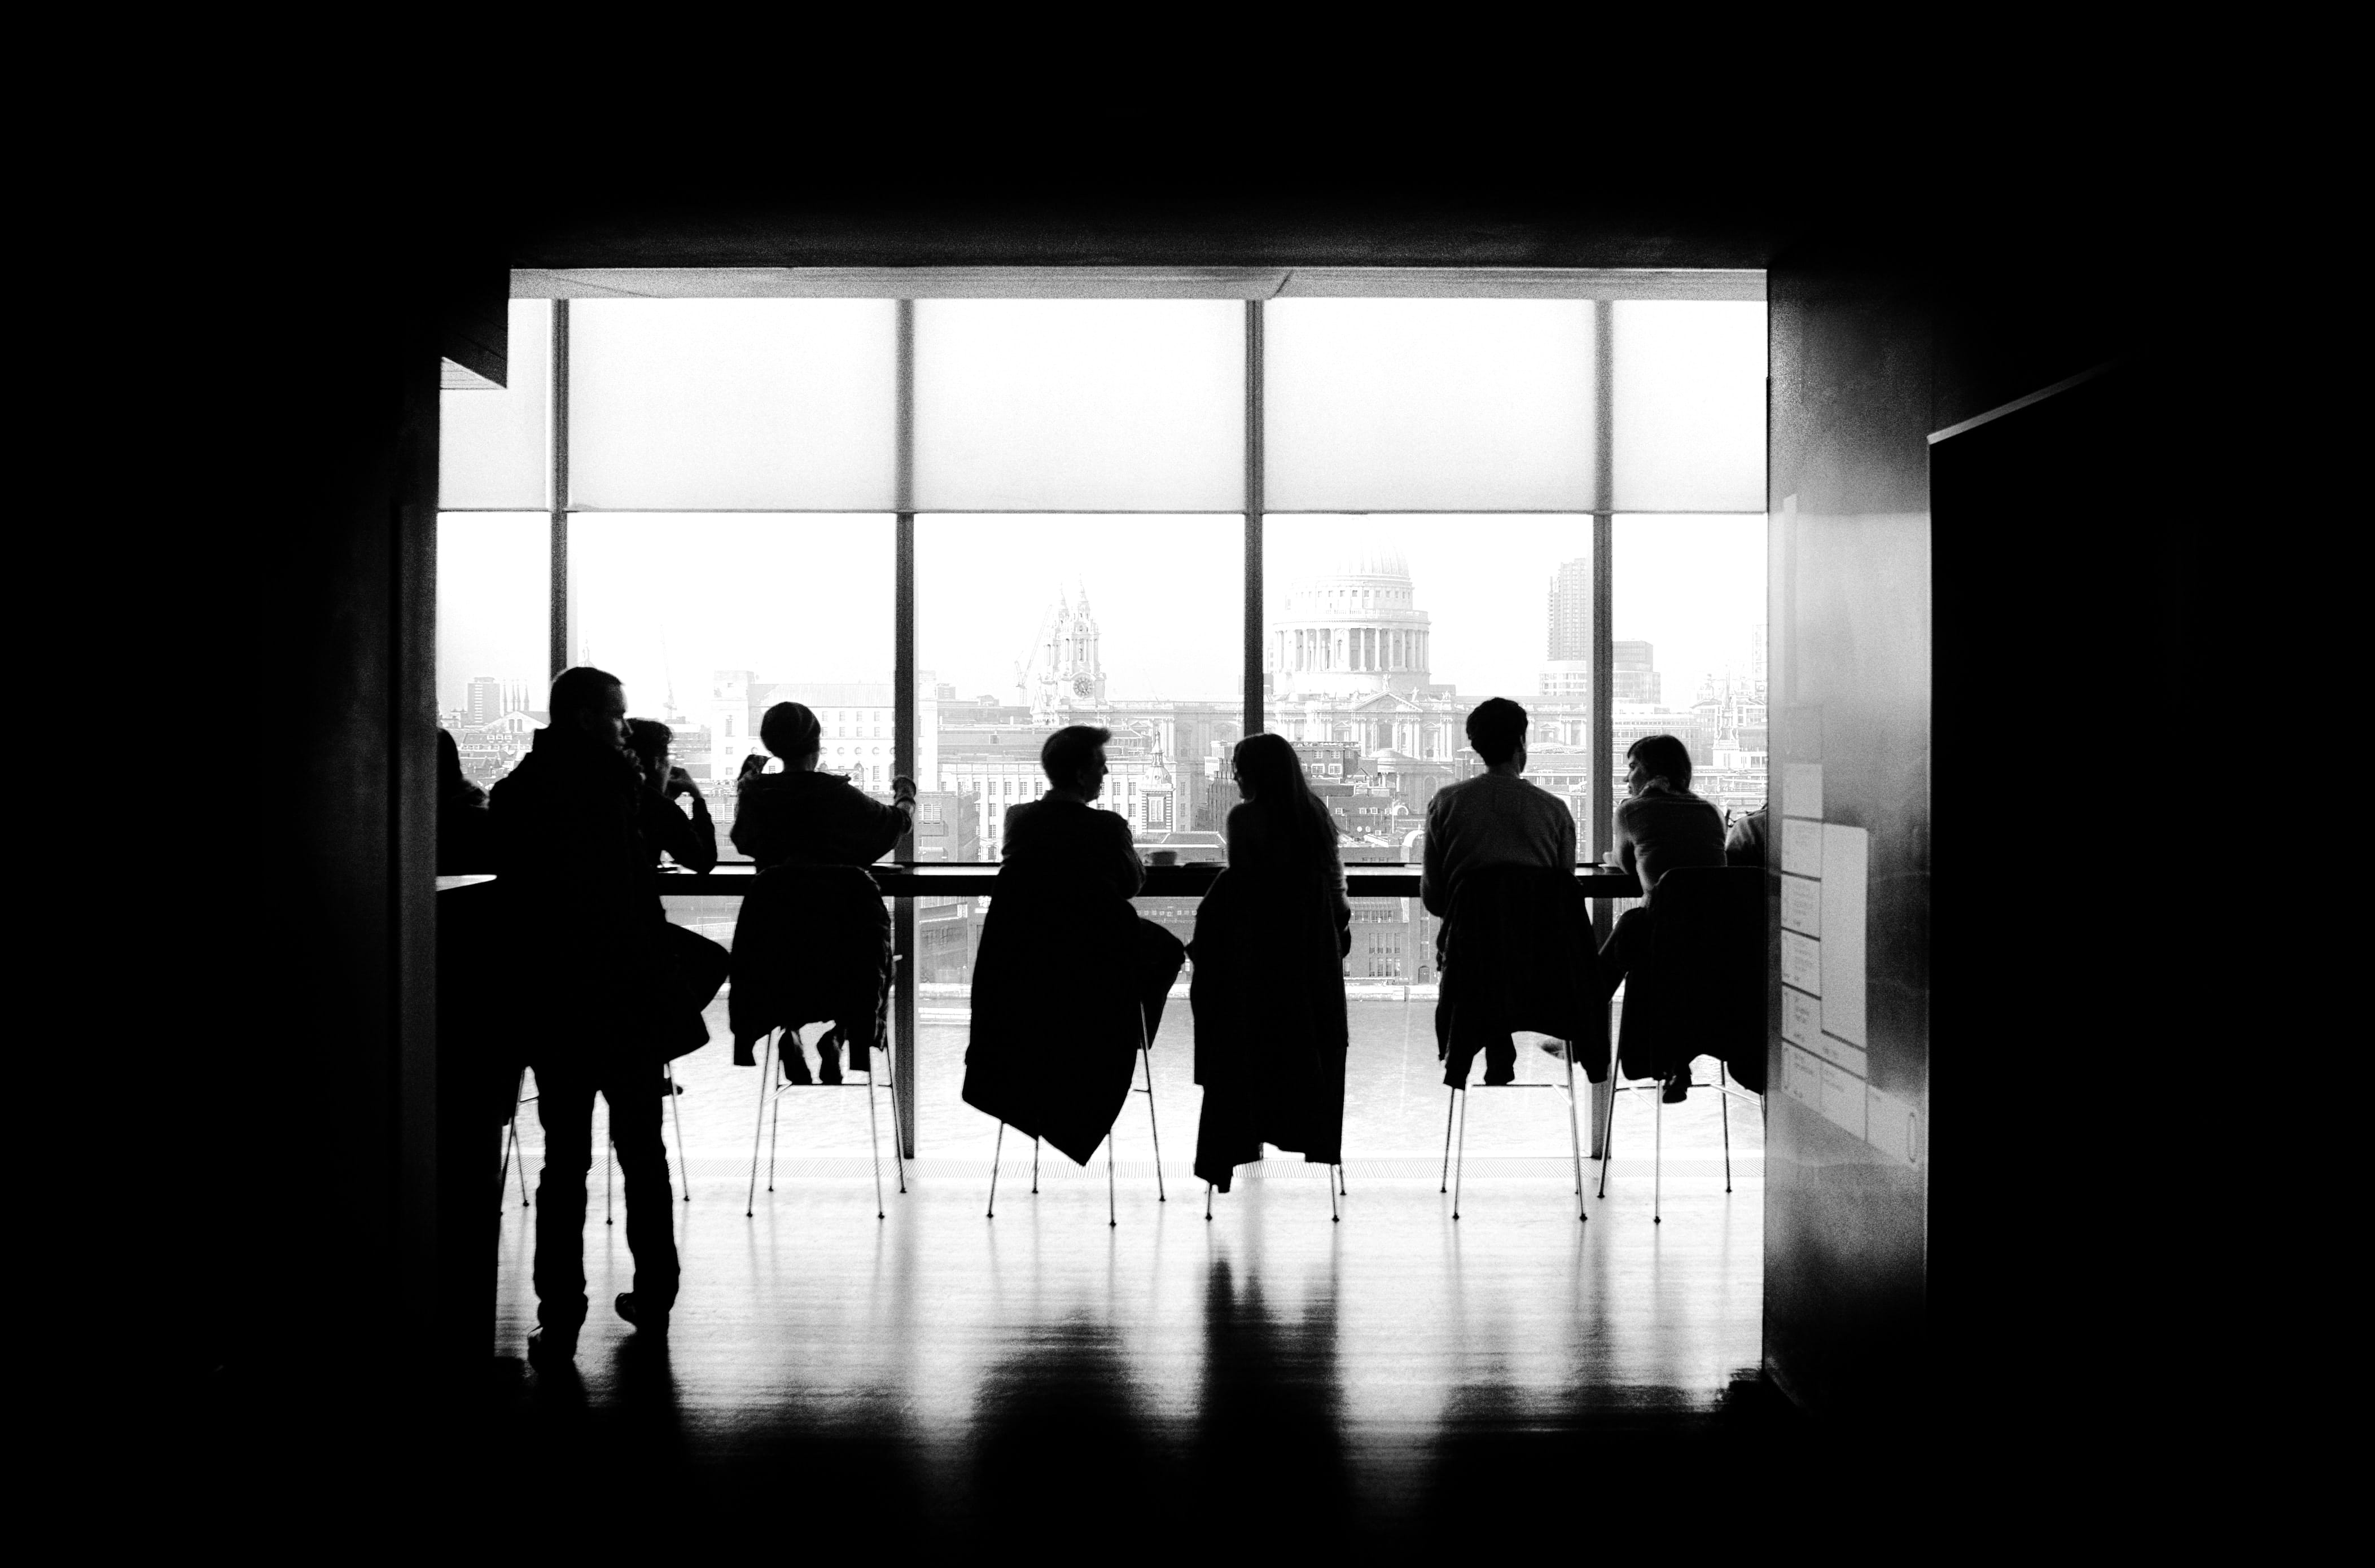 People sitting at a long conference table in front of windows; image by Samuel Zeller, via Unsplash.com.